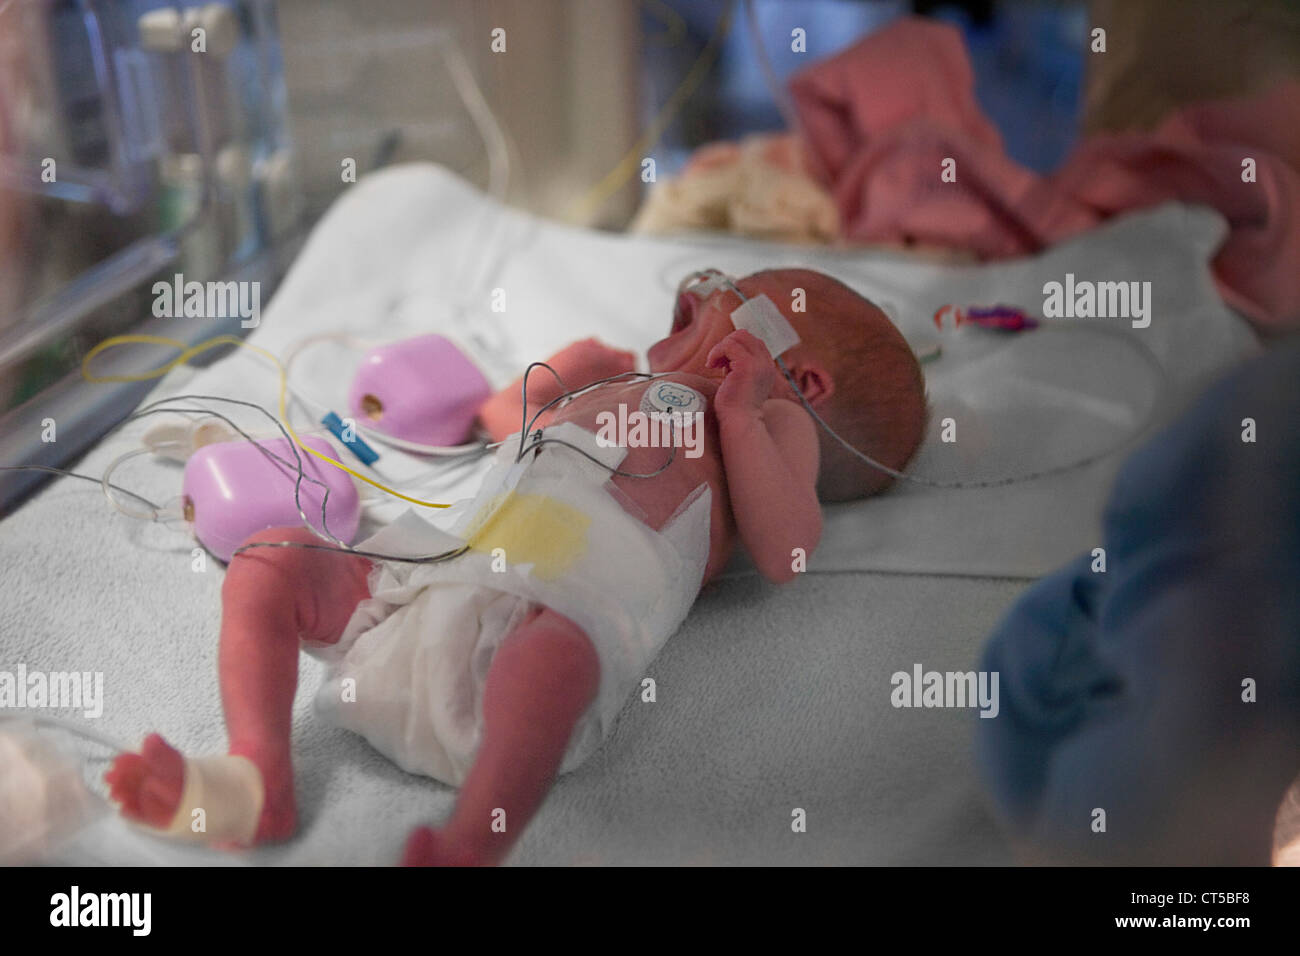 PREMATURE BABY - Stock Image